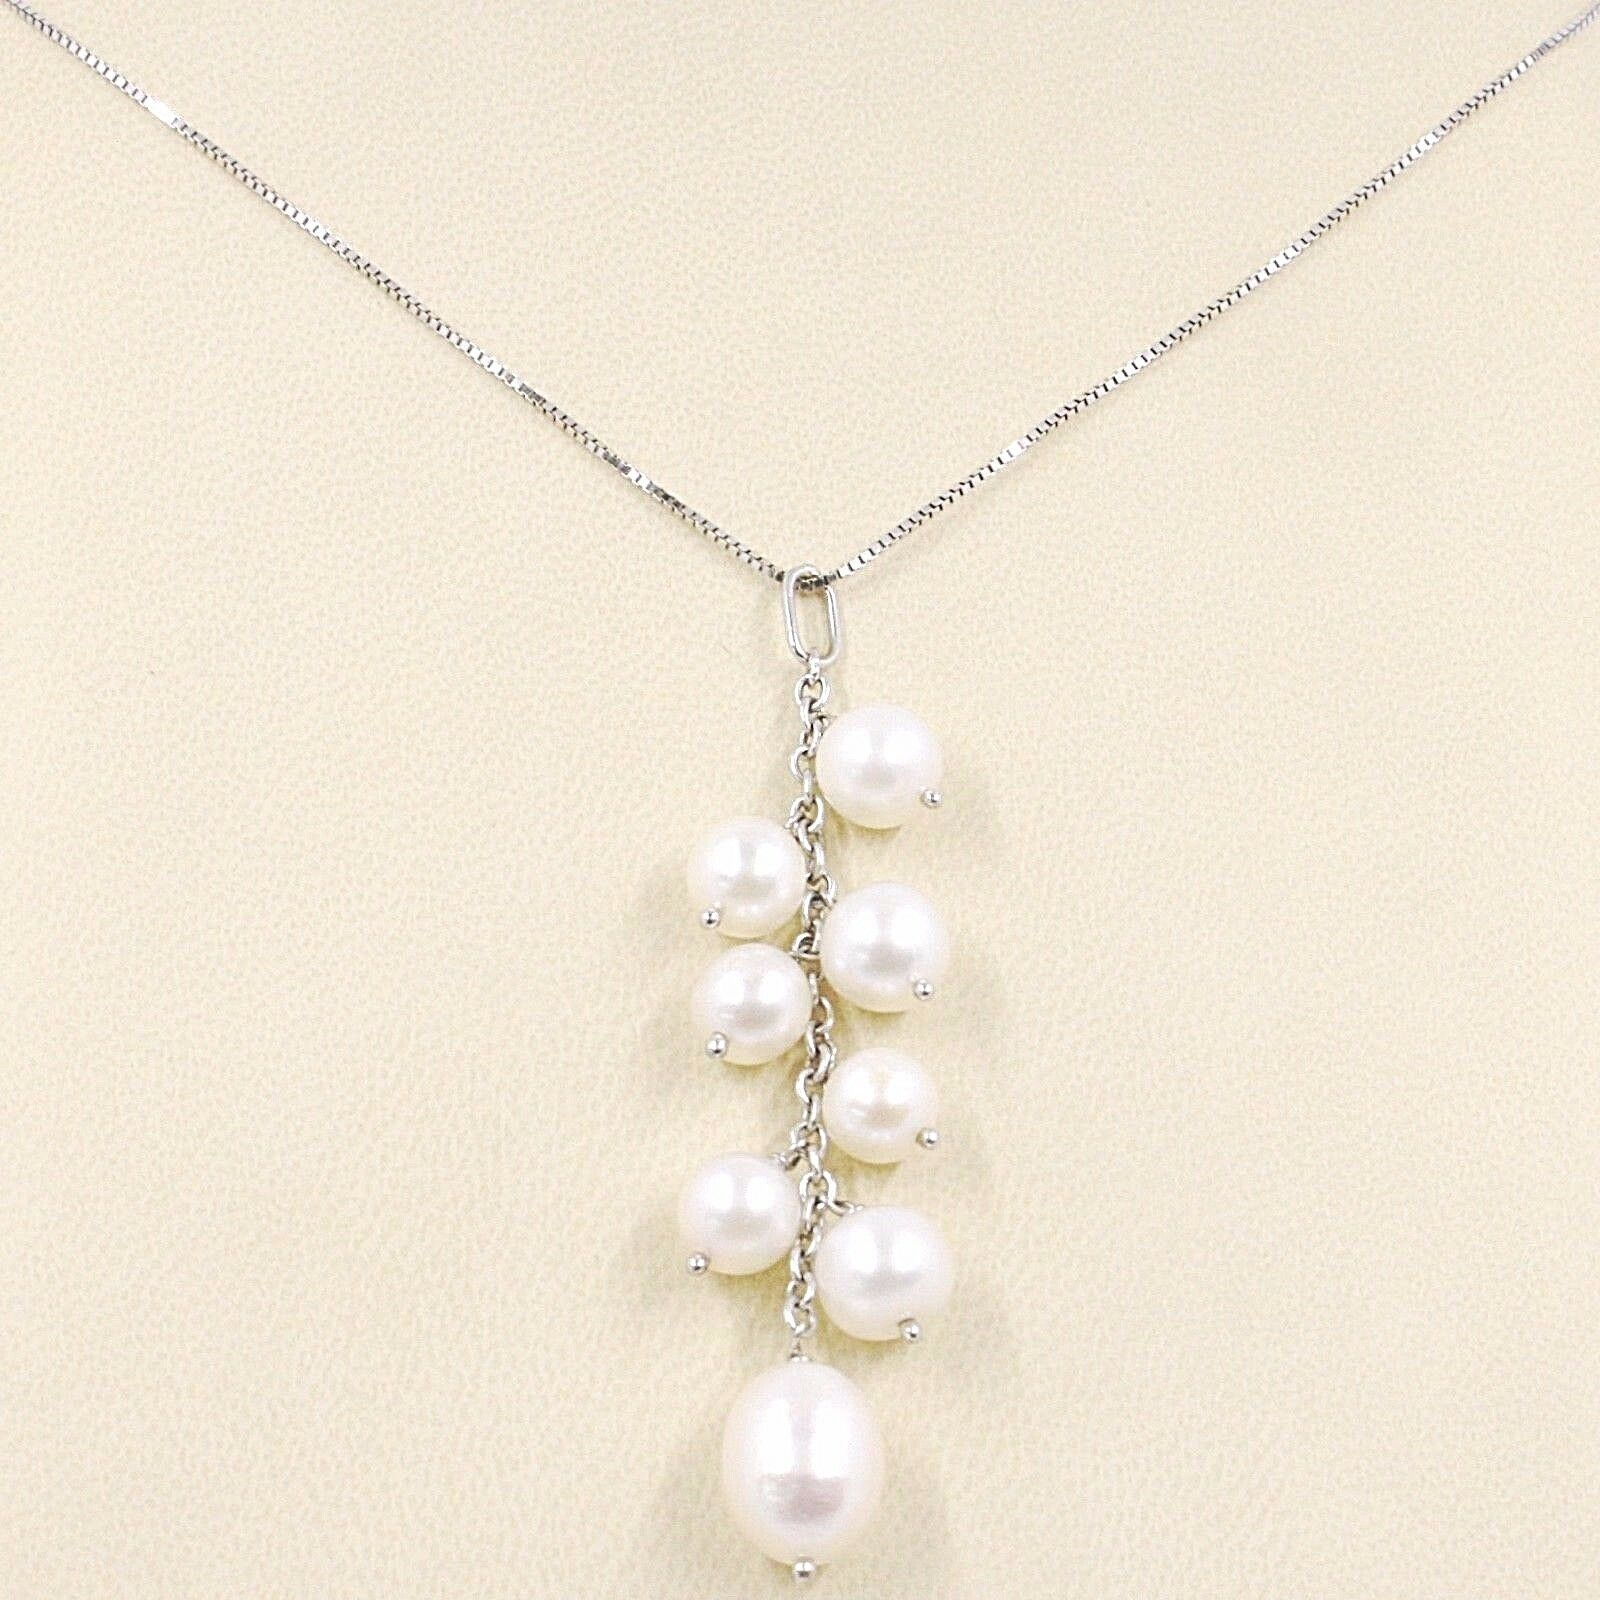 Necklace White Gold 750 18K, Pendant Bunch, White Pearls, Chain Venetian